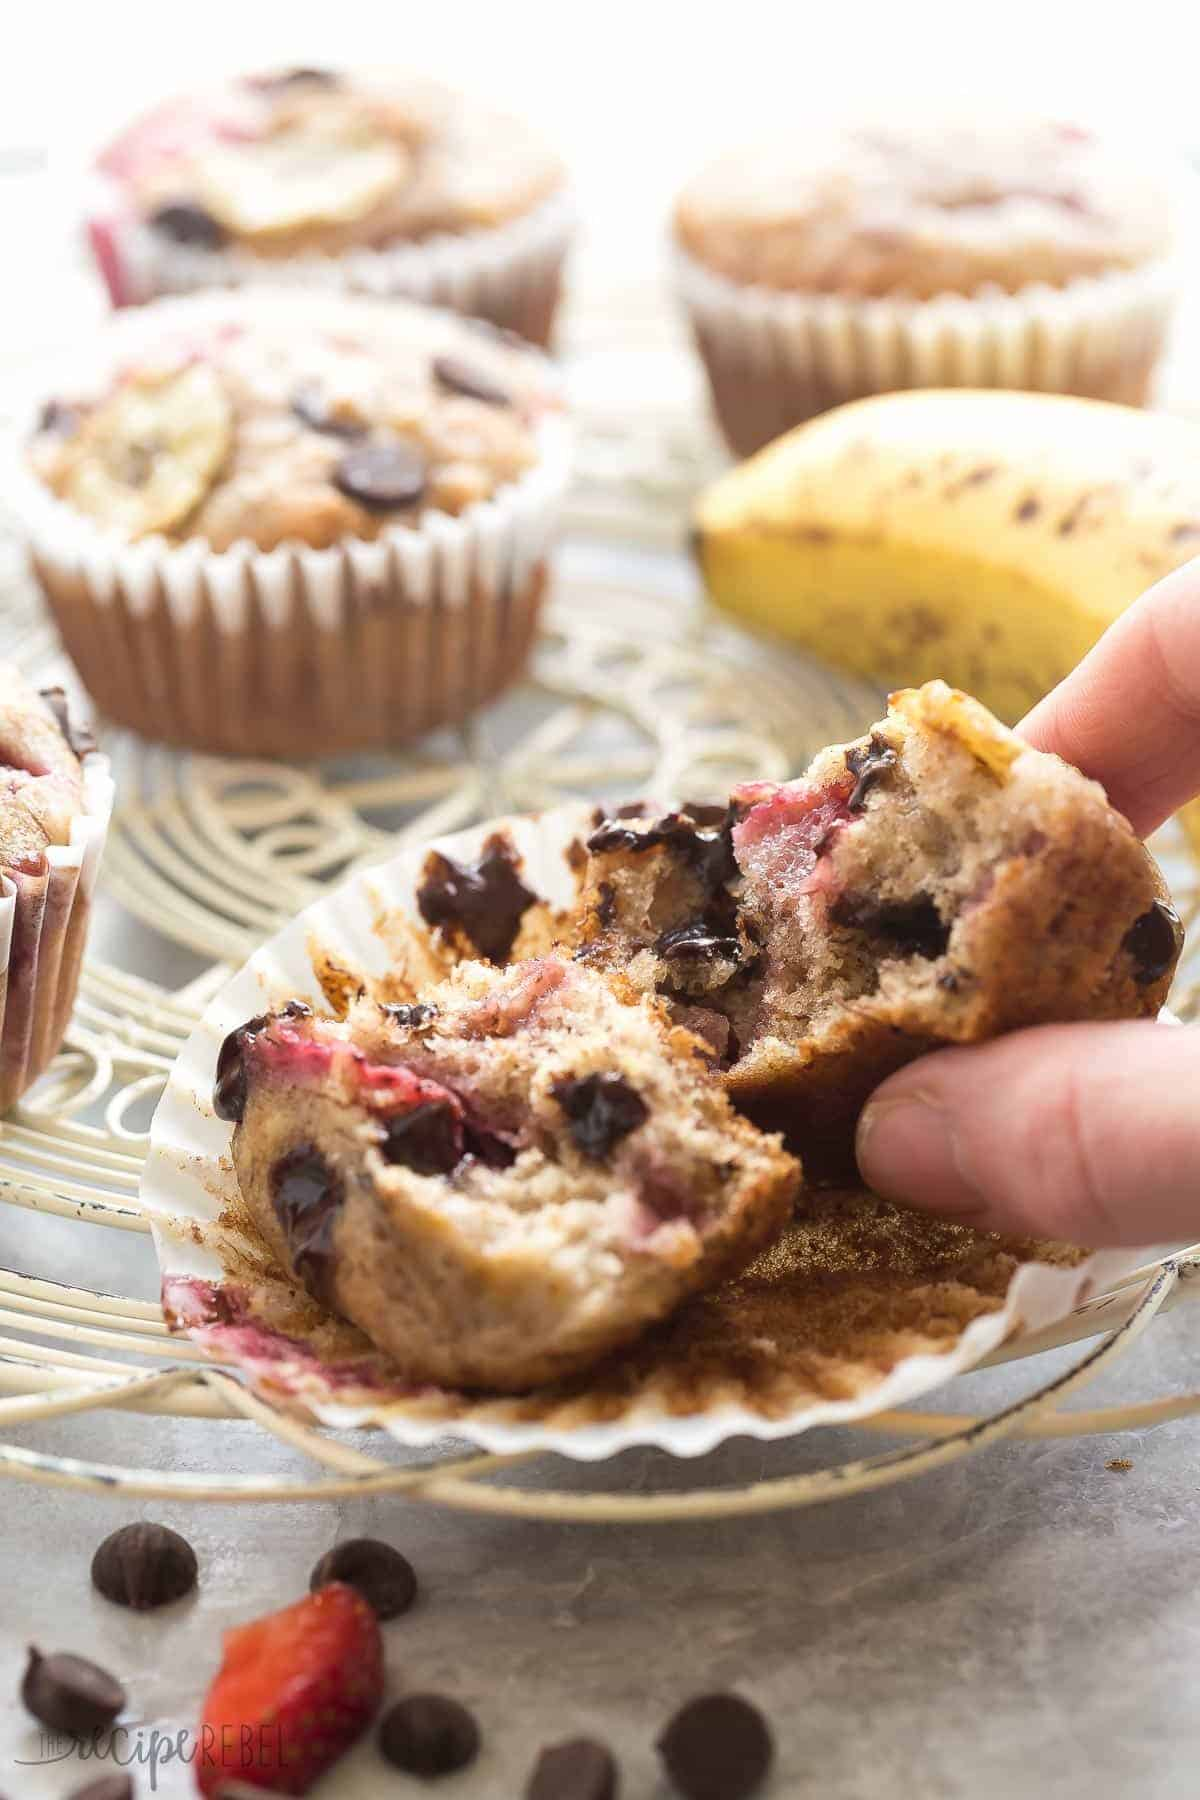 These Chocolate Chip Banana Muffins are the best -- so moist but made healthier with whole wheat flour, yogurt and loaded with fresh strawberries!